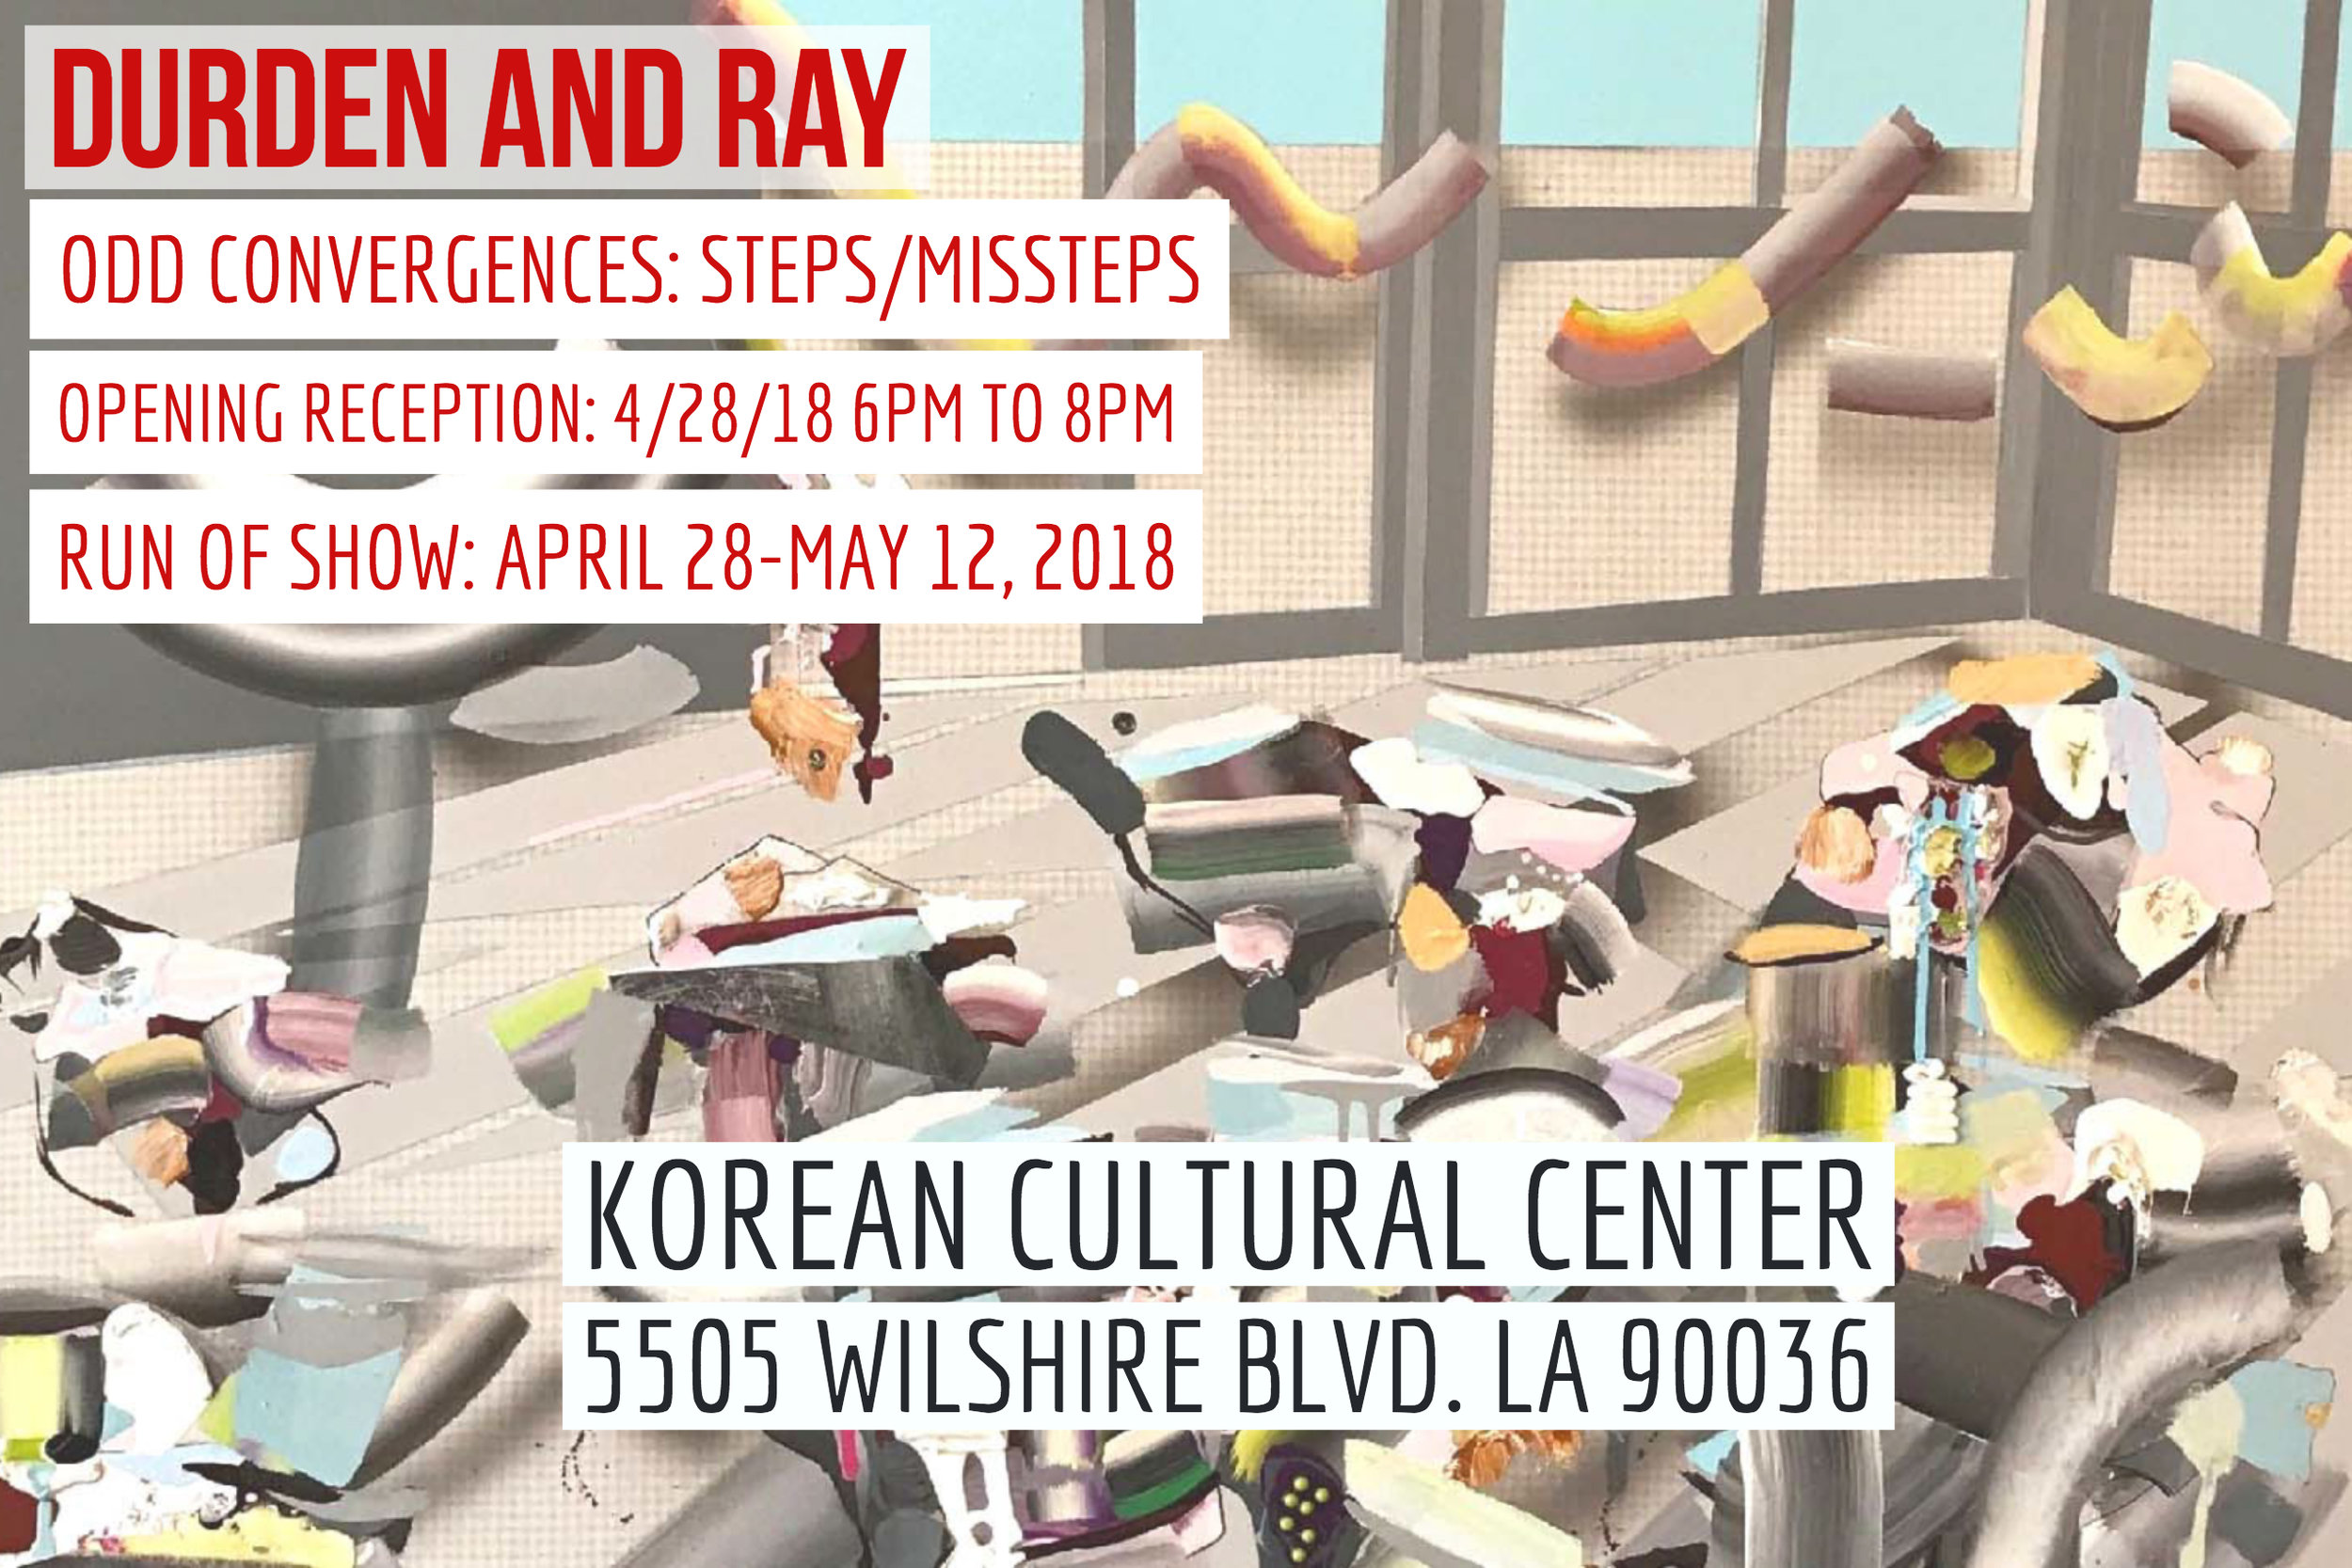 Reception: Saturday, April 28, 6-8pm Dates: April 28 to May 12, 2018 Hours: Mon to Fri 10am- 5pm and Saturday 10am-1pm  Address: 5505 Wilshire Blvd. Los Angeles, CA 90036 Curators:  Gul Cagin ,  Roni Feldman  and  Valerie Wilcox  Artists: Carlos Beltran,  Carl Berg ,  Jorin Bossen ,  Gul Cagin ,  Jennifer Celio , Sijia Chen ,  Joe Davidson ,  Dani Dodge ,  Lana Duong ,  Tom Dunn ,  Roni Feldman ,  Ben Jackel ,  Brian Thomas Jones ,  Jenny Hager ,  David Leapman , Sean Noyce ,  Max Presneill ,  Ty Pownall ,  David Spanbock ,  Curtis Stage , Valerie Wilcox ,  Steven Wolkoff  and  Alison Woods